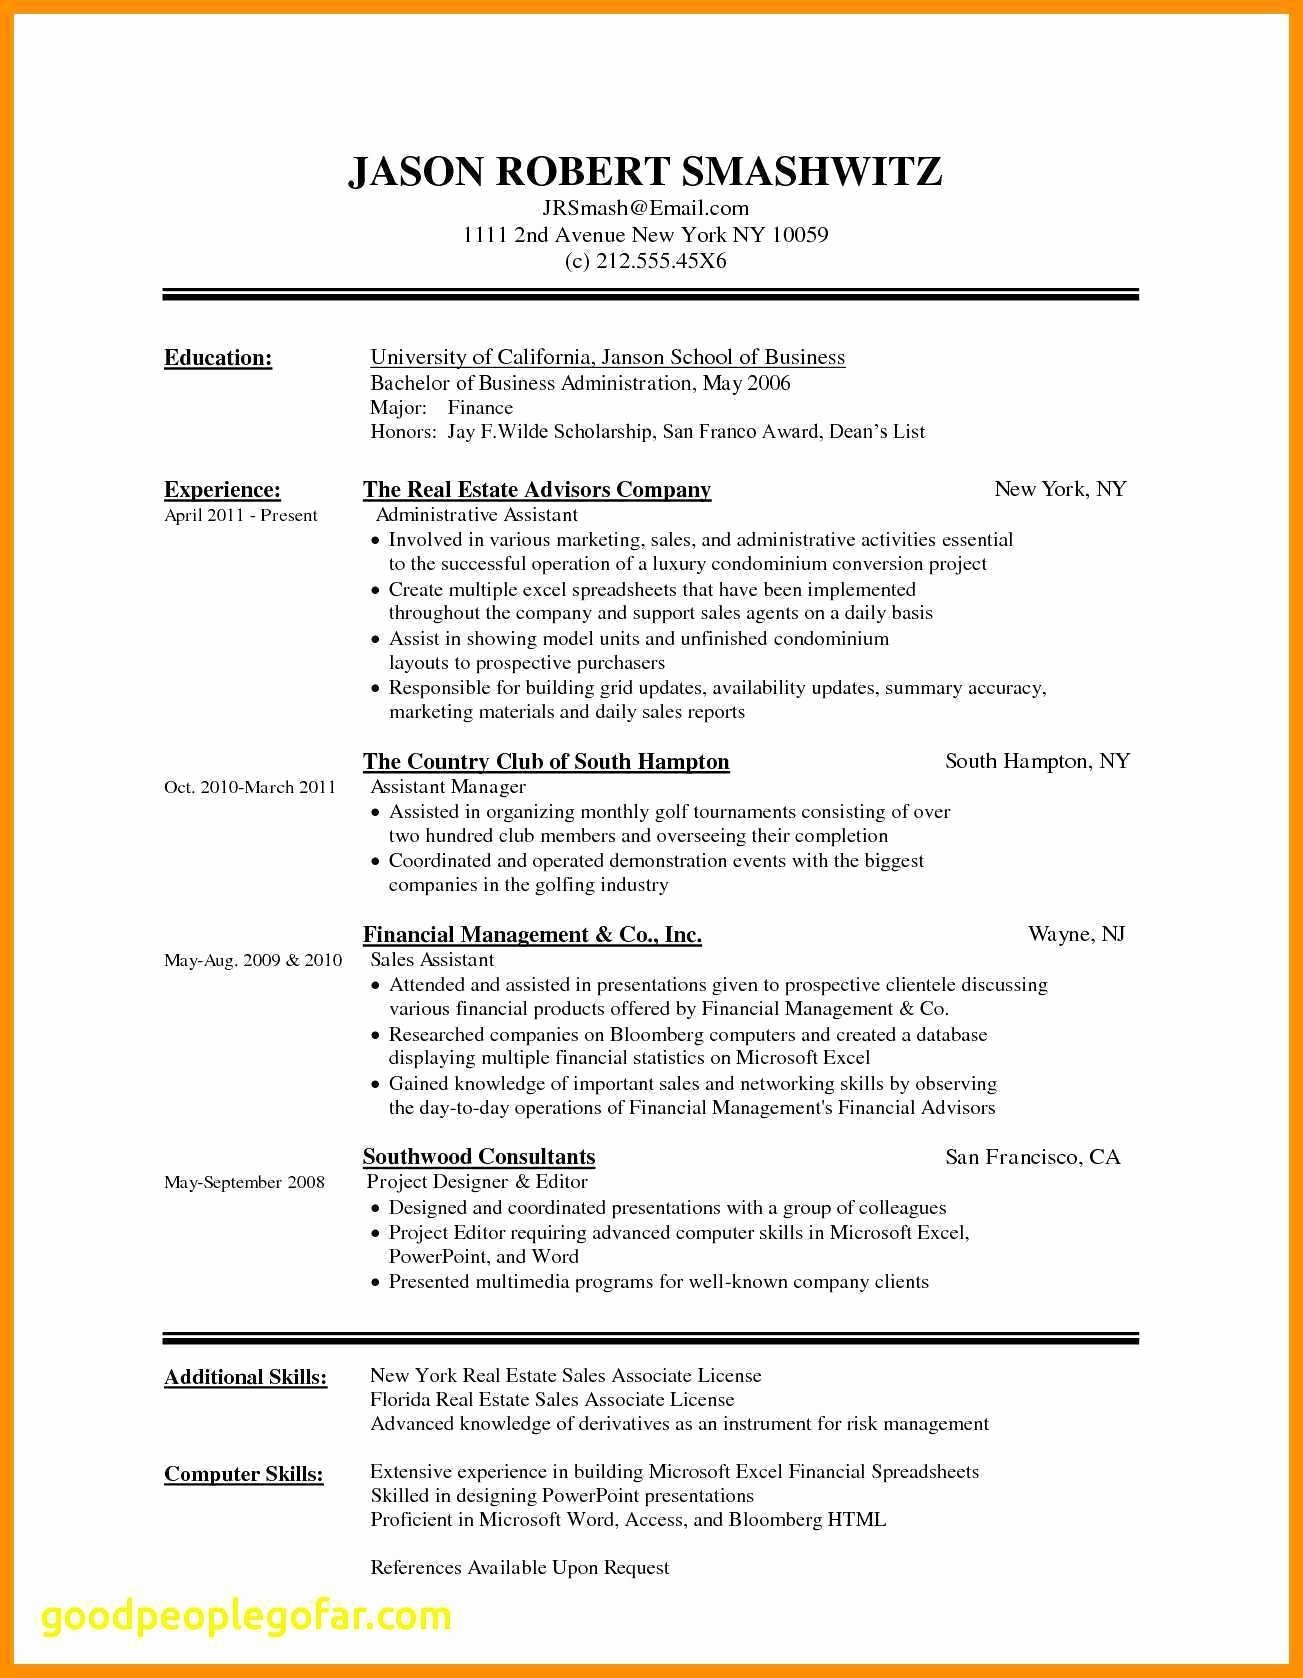 Resume Template 2018 Free - 16 Fresh Free Resume Templates Microsoft